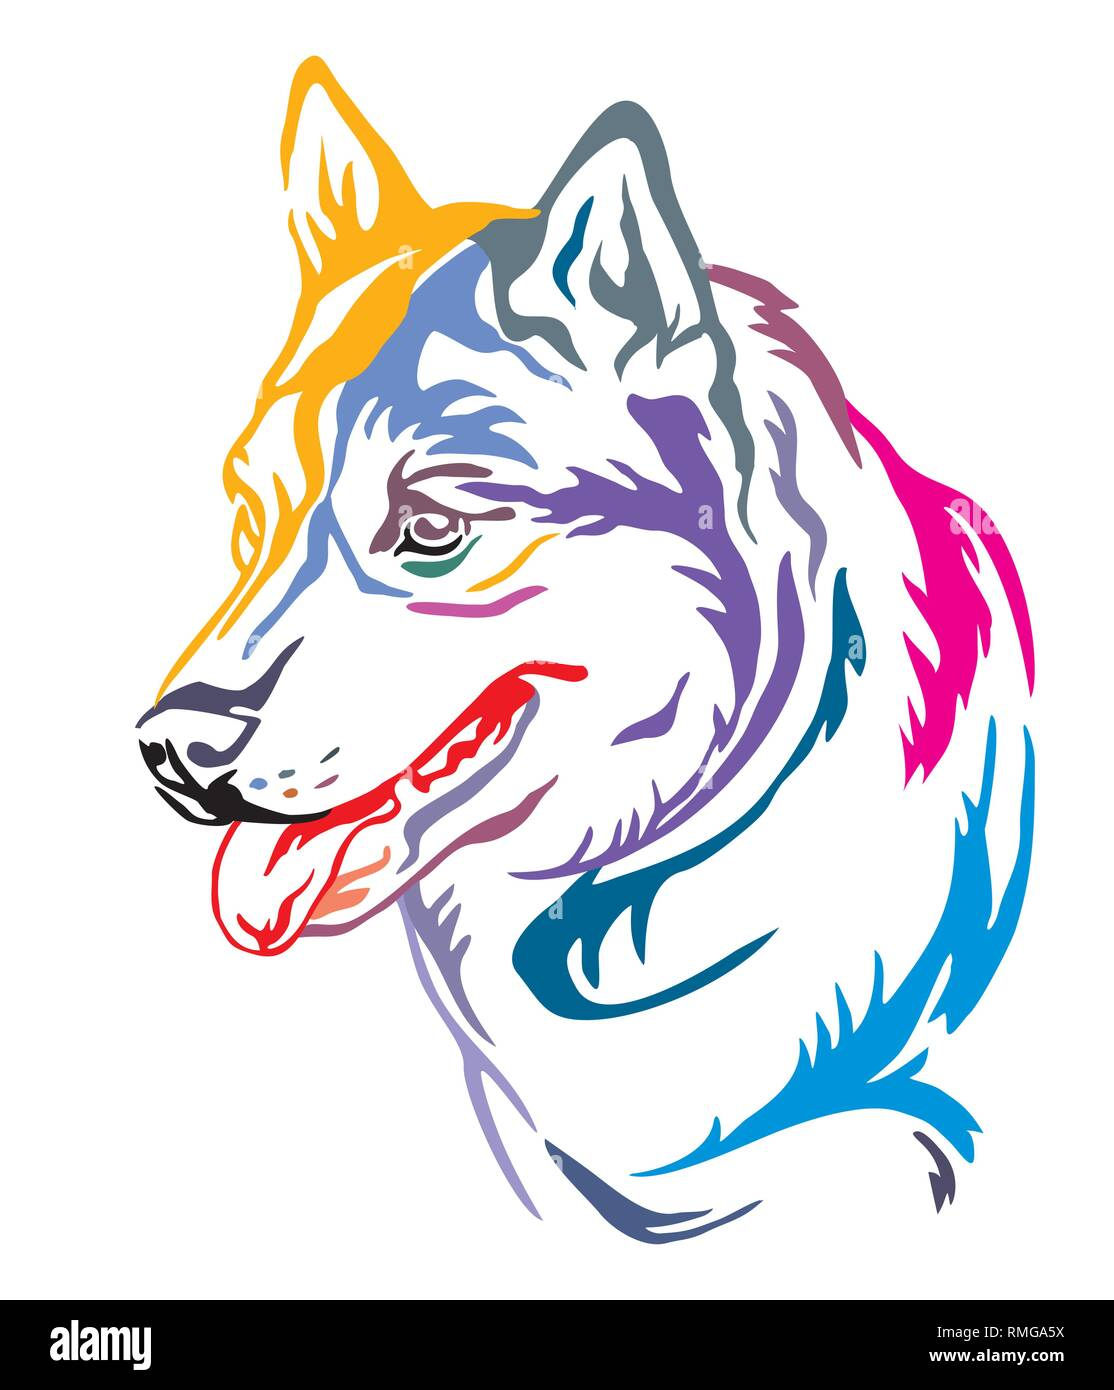 Colorful decorative outline portrait of Dog Siberian Husky looking in profile, vector illustration in different colors isolated on white background. I - Stock Vector